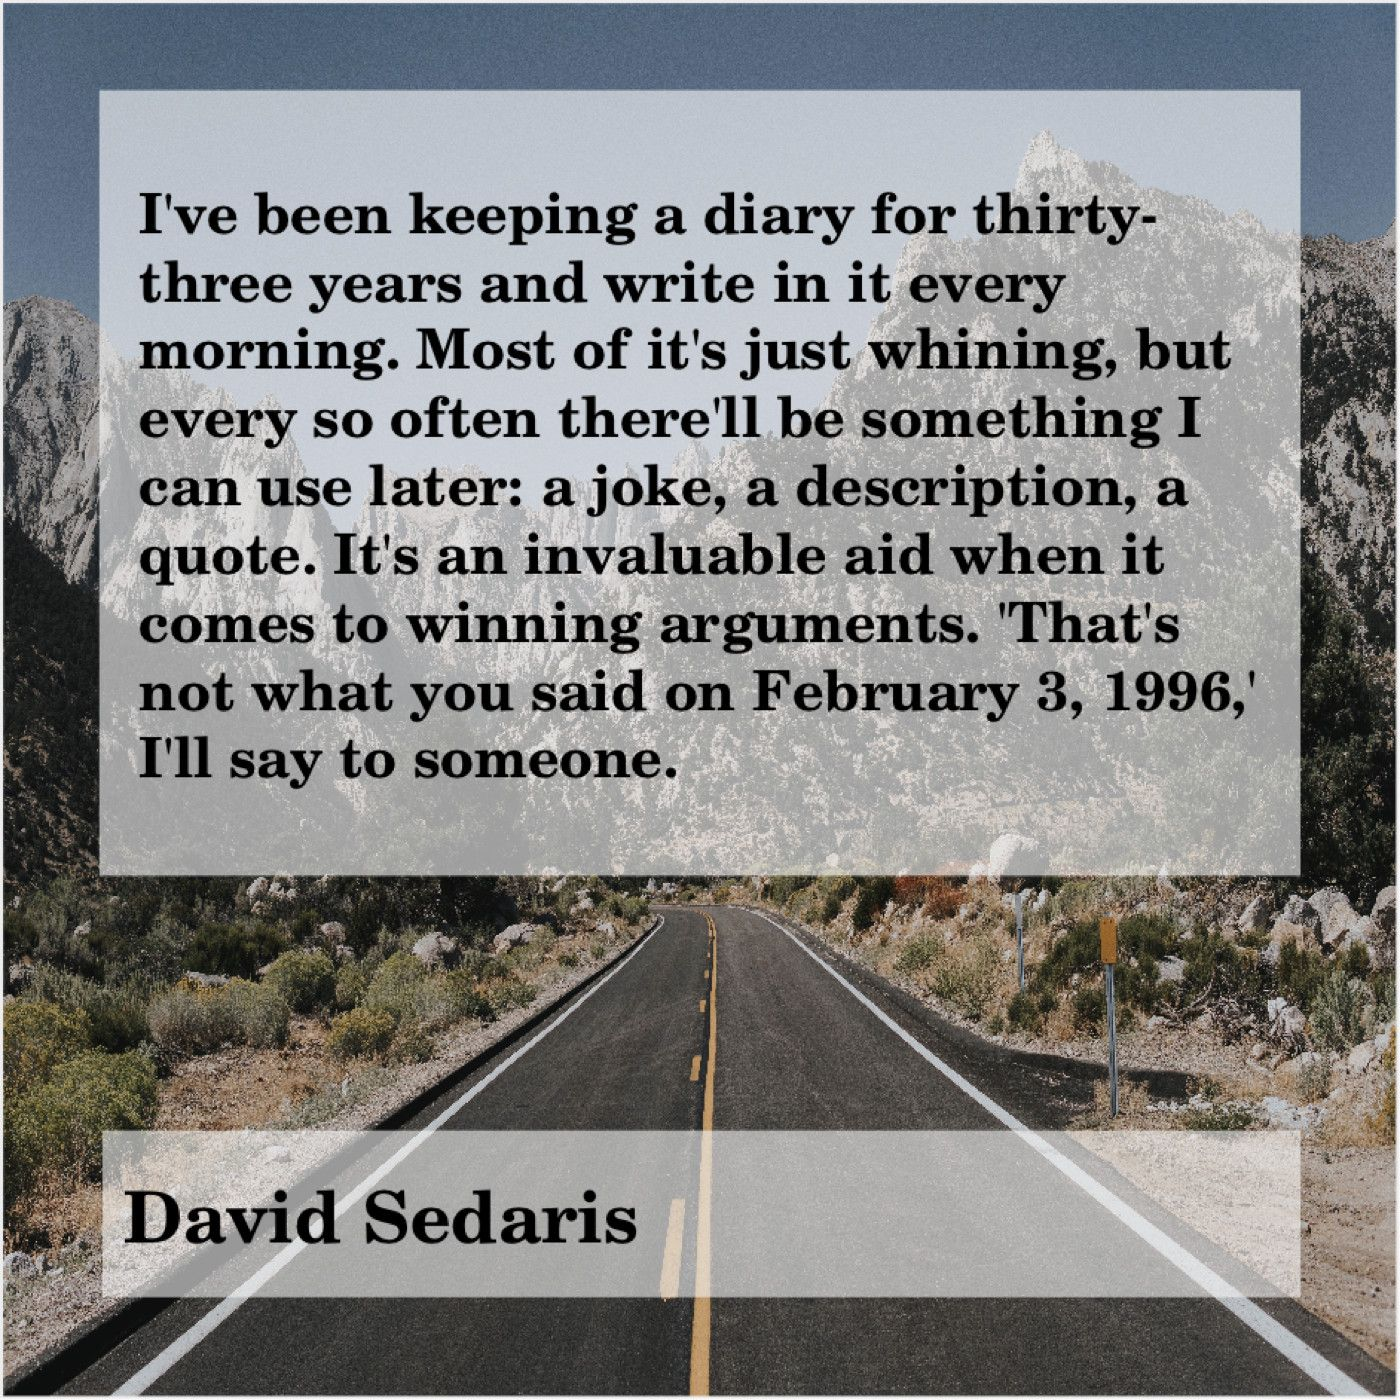 Ive Been Keeping A Diary For Thirty Three Years And Write In It Every Morning Most Of Its Just David Sedaris Keeping A Diary Too Cool For School